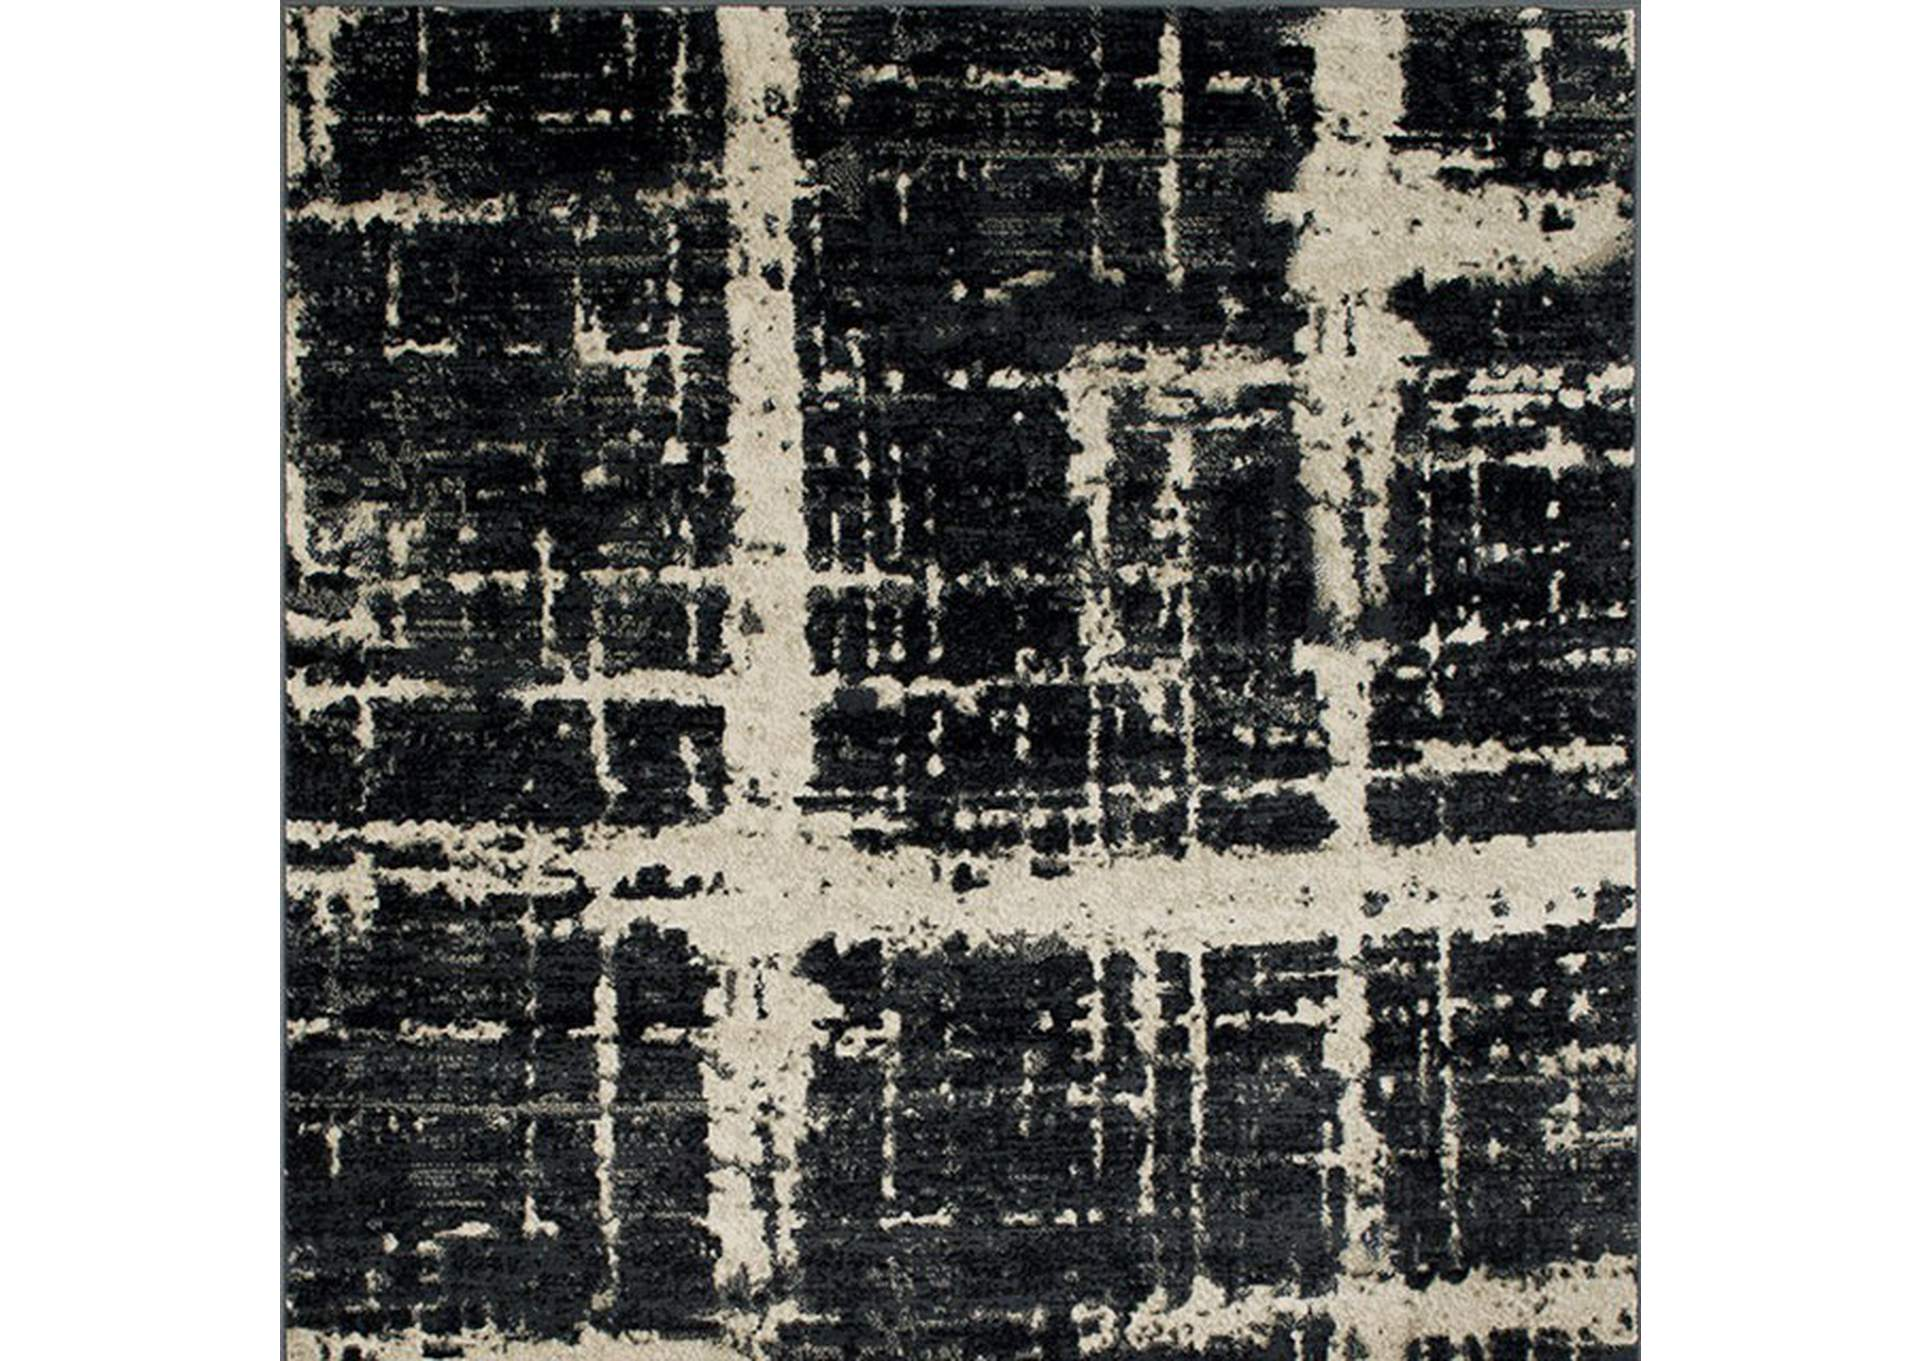 Kozlu Gray Area Rug,Furniture of America